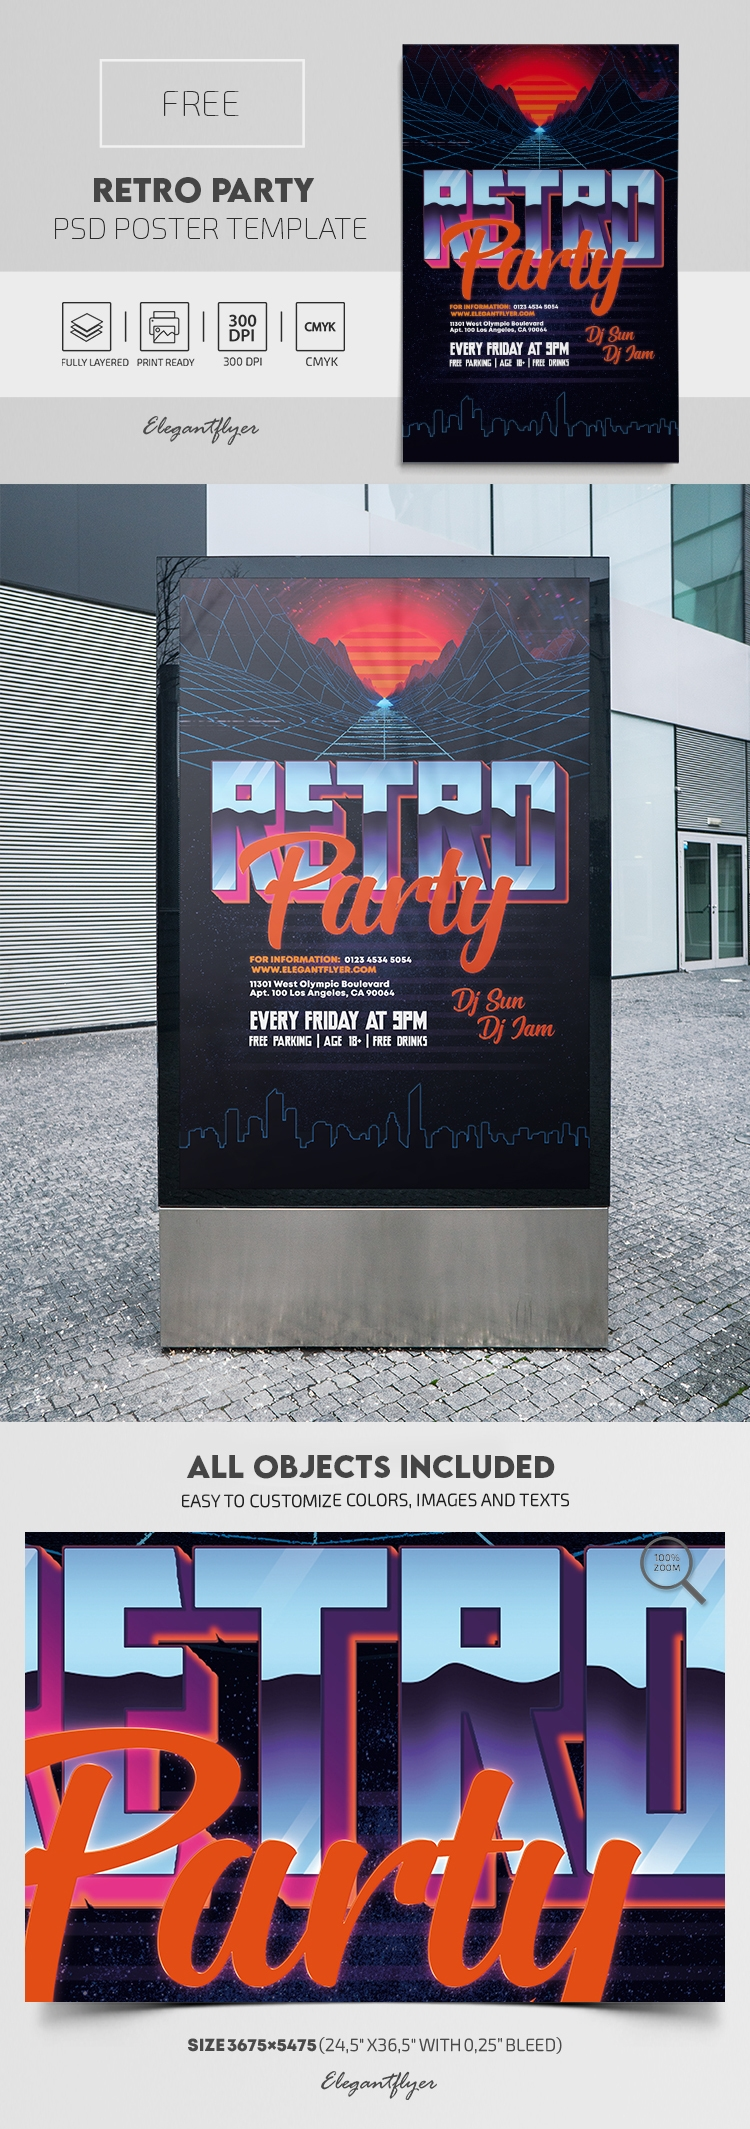 Retro Party – Free PSD Poster Template